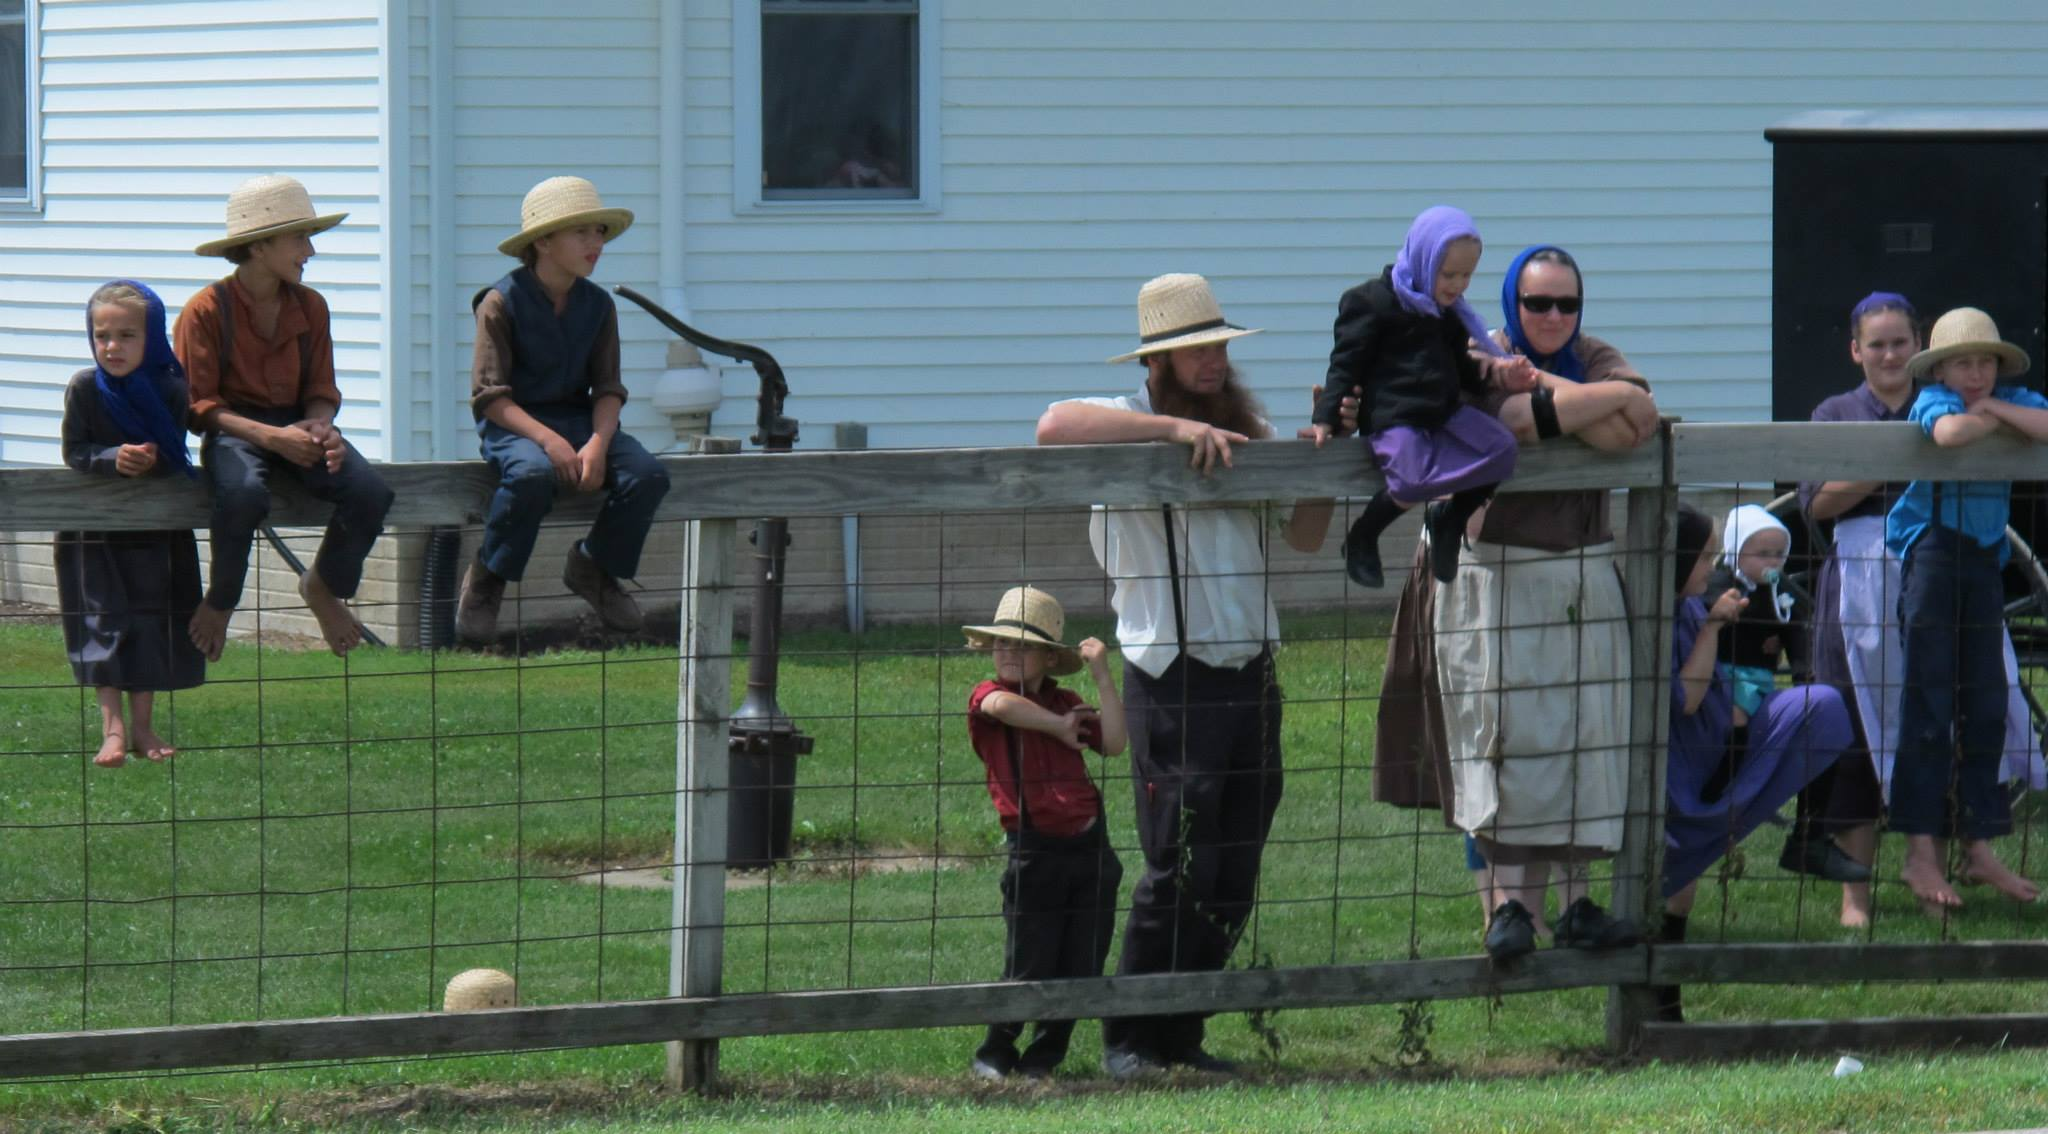 Amish at a country school observe RAGBRAI passing by.